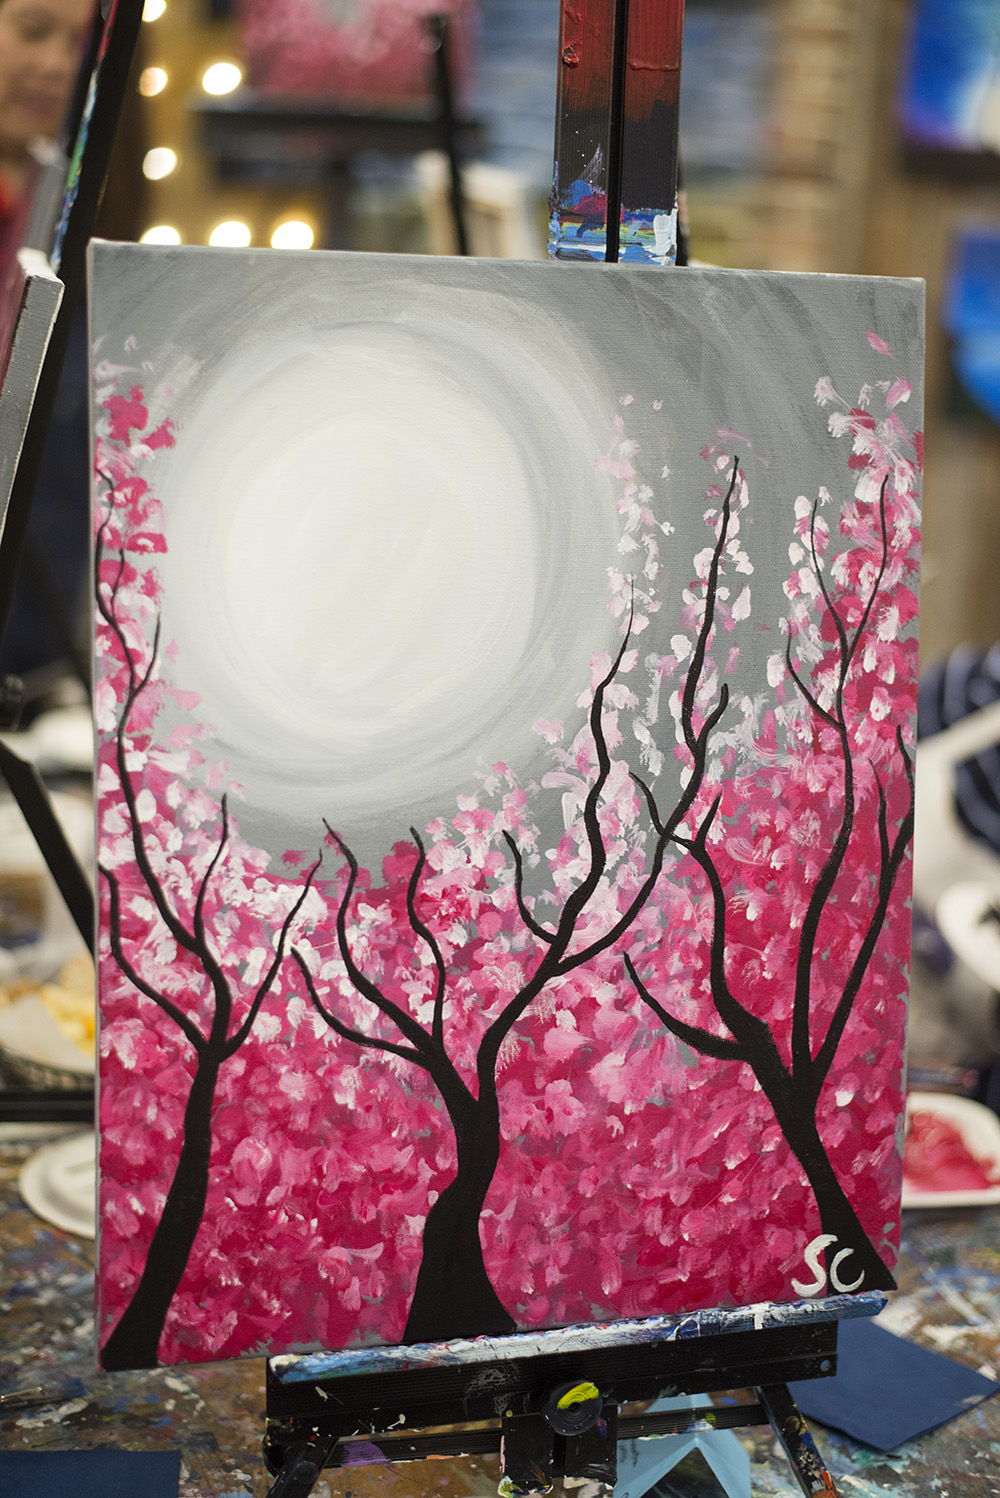 Looking for a fun girls night out activity? Painting and wine are always a good idea right? Book a paint and sip night for you and your girlfriends!